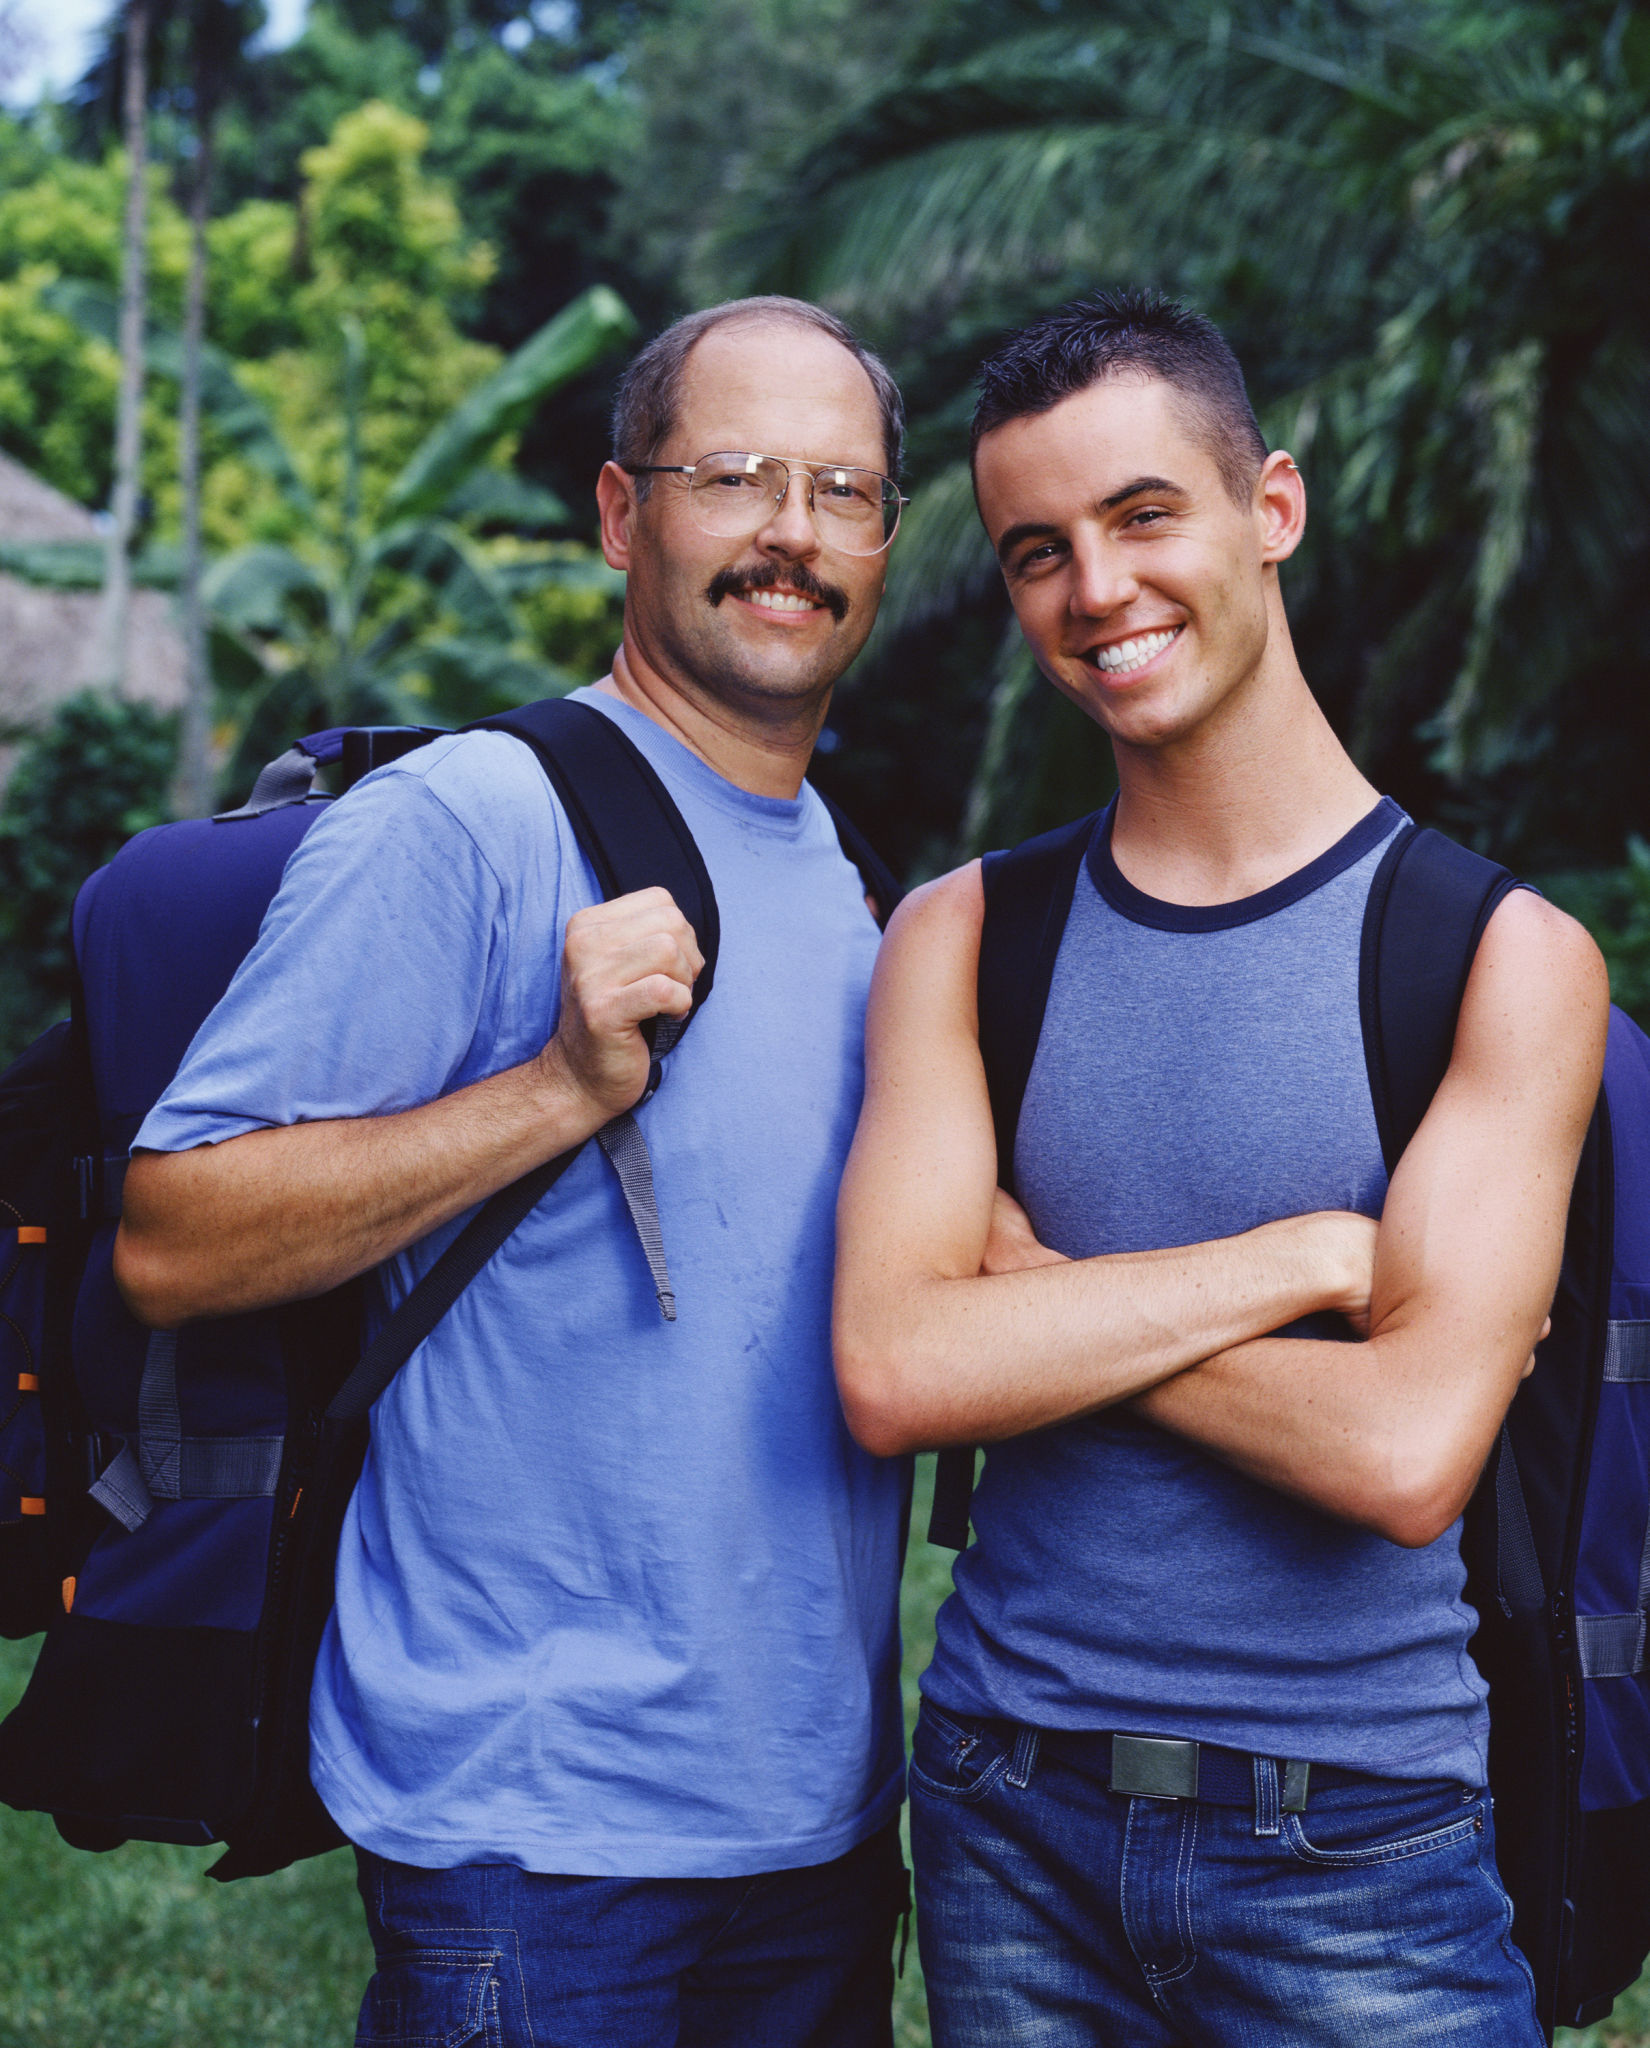 from Zaire amazing race gay competitors